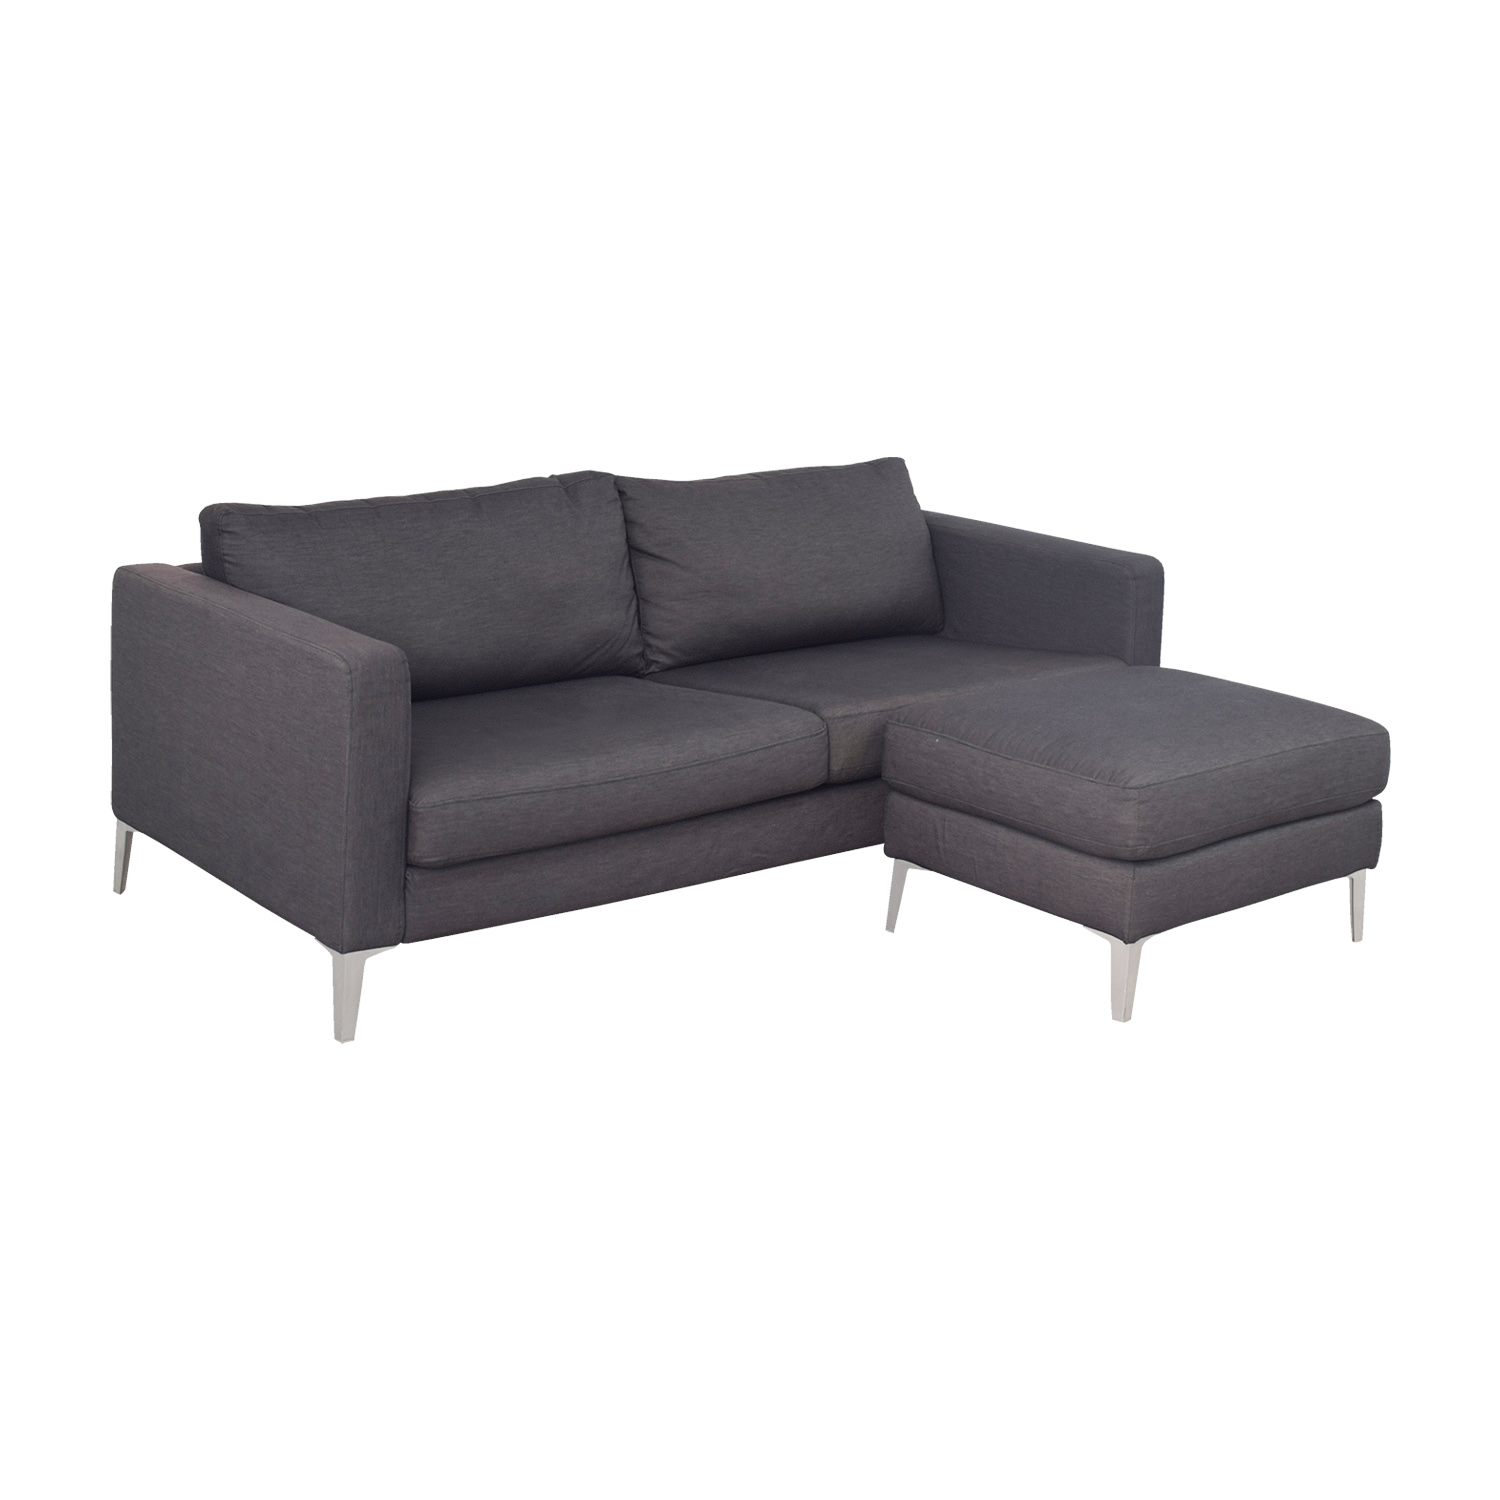 44 Off Ikea Ikea Karlstad Grey Couch And Ottoman Sofas